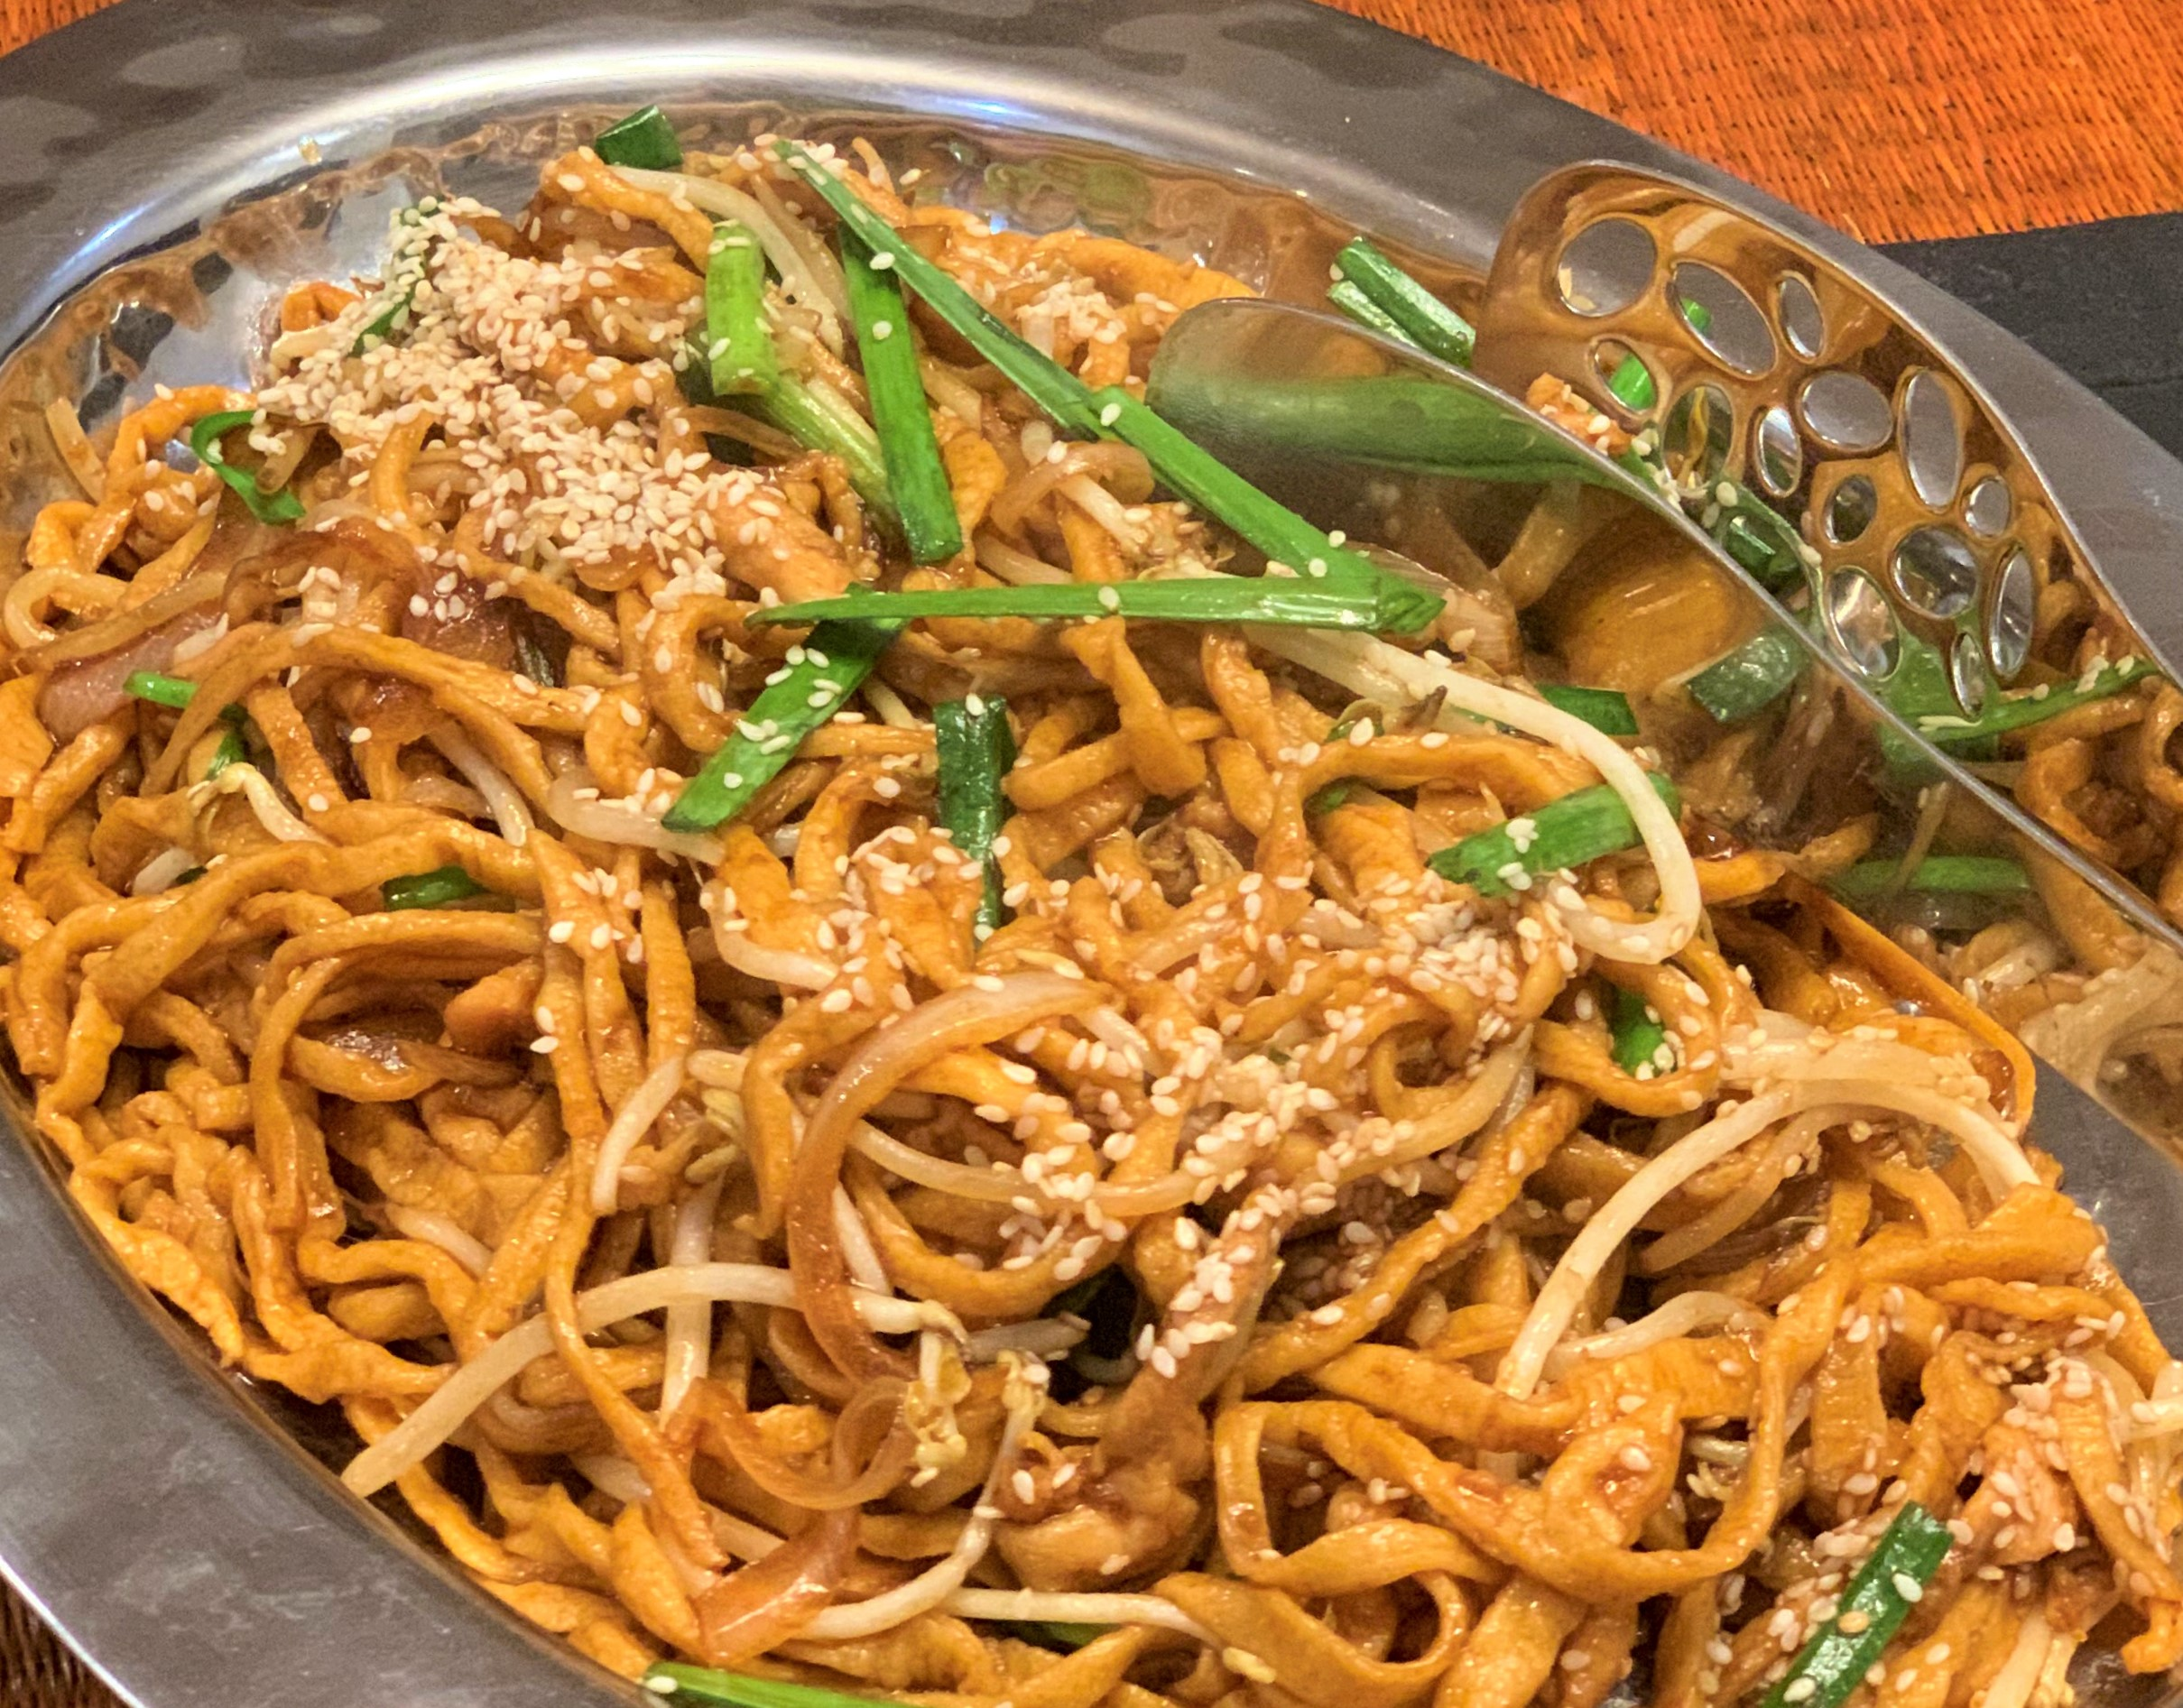 Supreme Soy Sauce Fried Noodles豉油皇炒面chǐ yóu huáng chǎo miàn